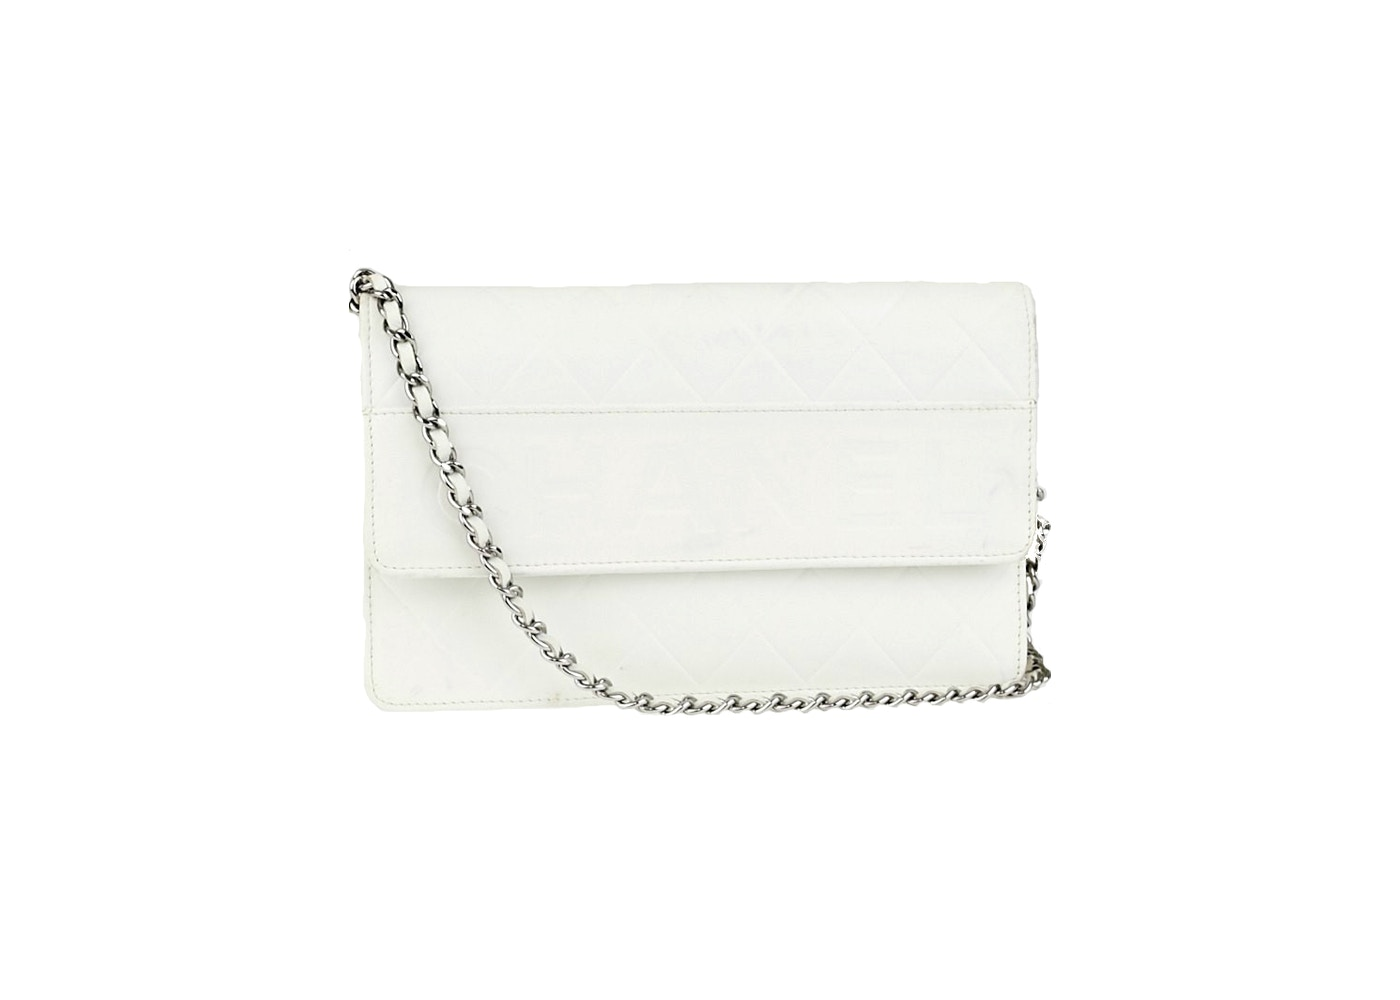 d7d9b1748c7edc Chanel Clutch Wallet on Chain Diamond LAX Quilted White. Diamond LAX  Quilted White